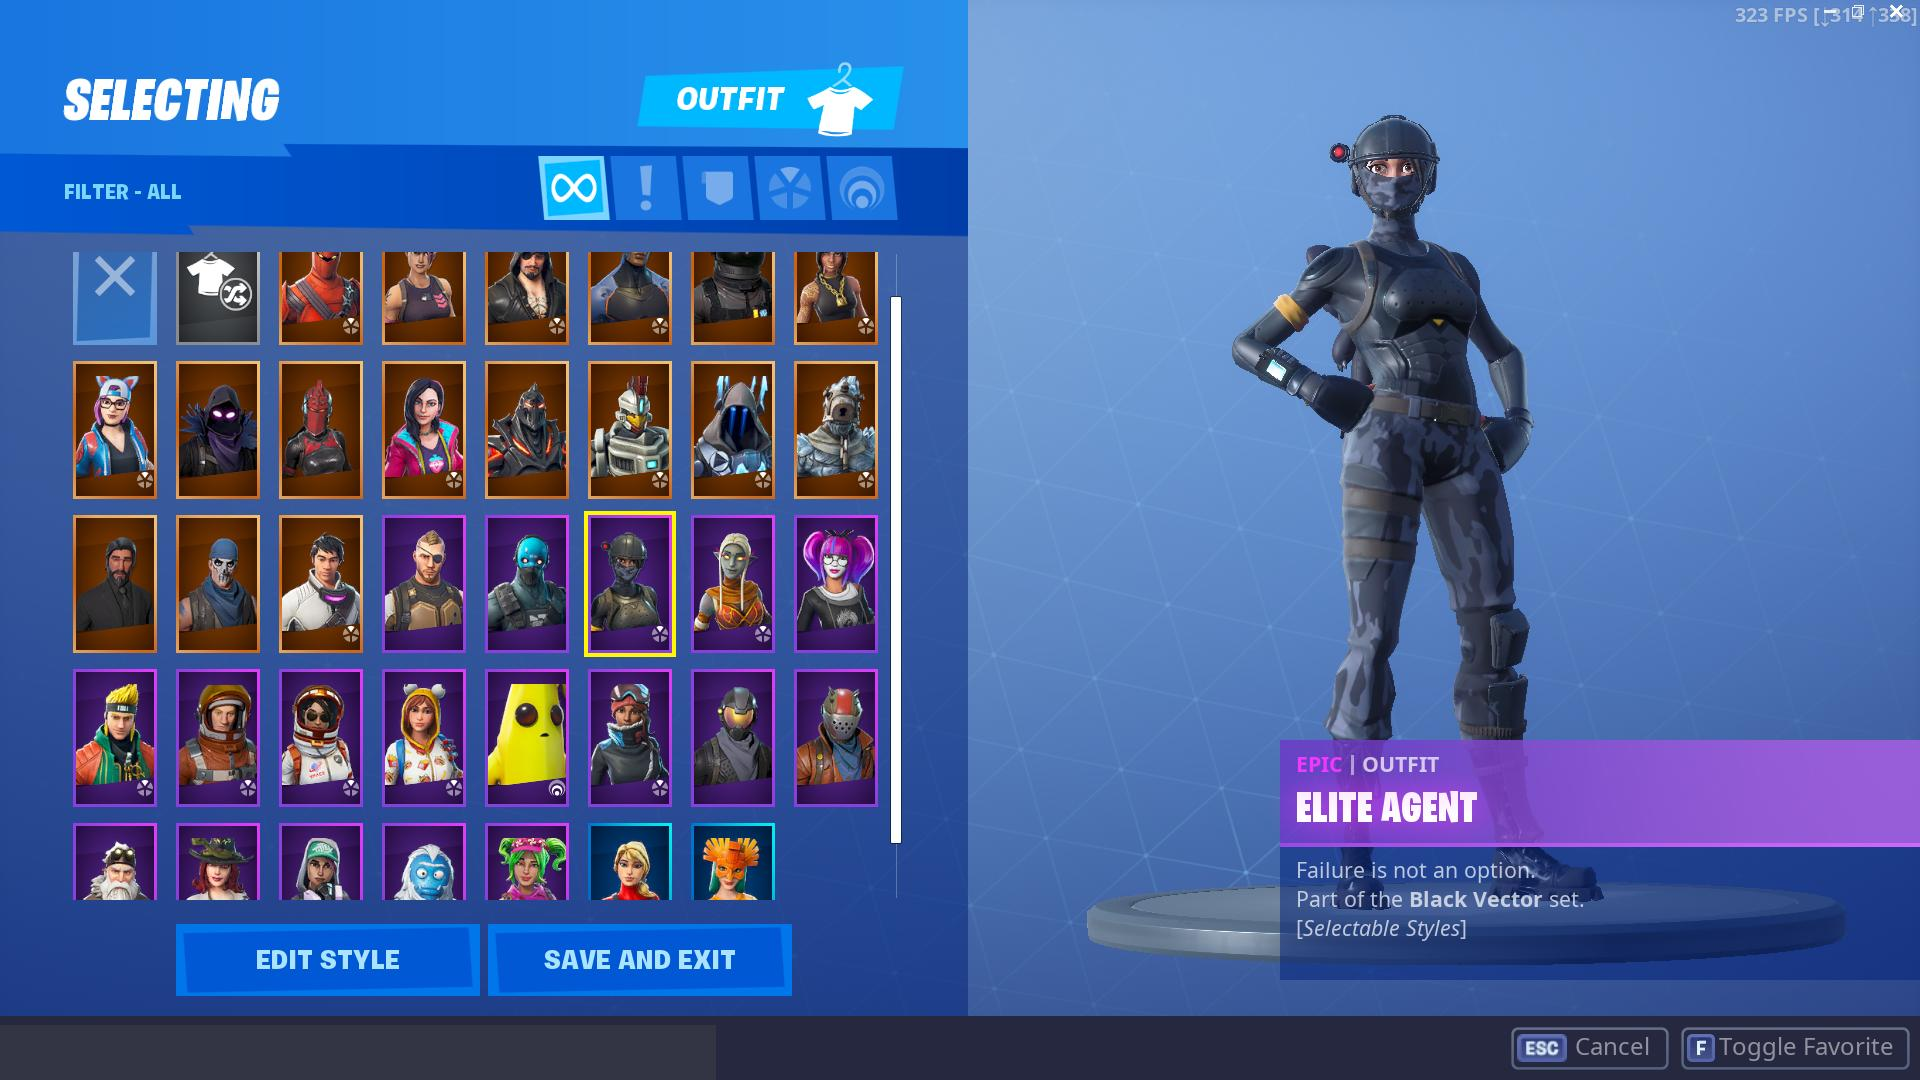 Fortnite Account Season 3 9 Reaper Luxe More Skins 37 Skins Stw Fortniteog Register a free account today to become a member! usd